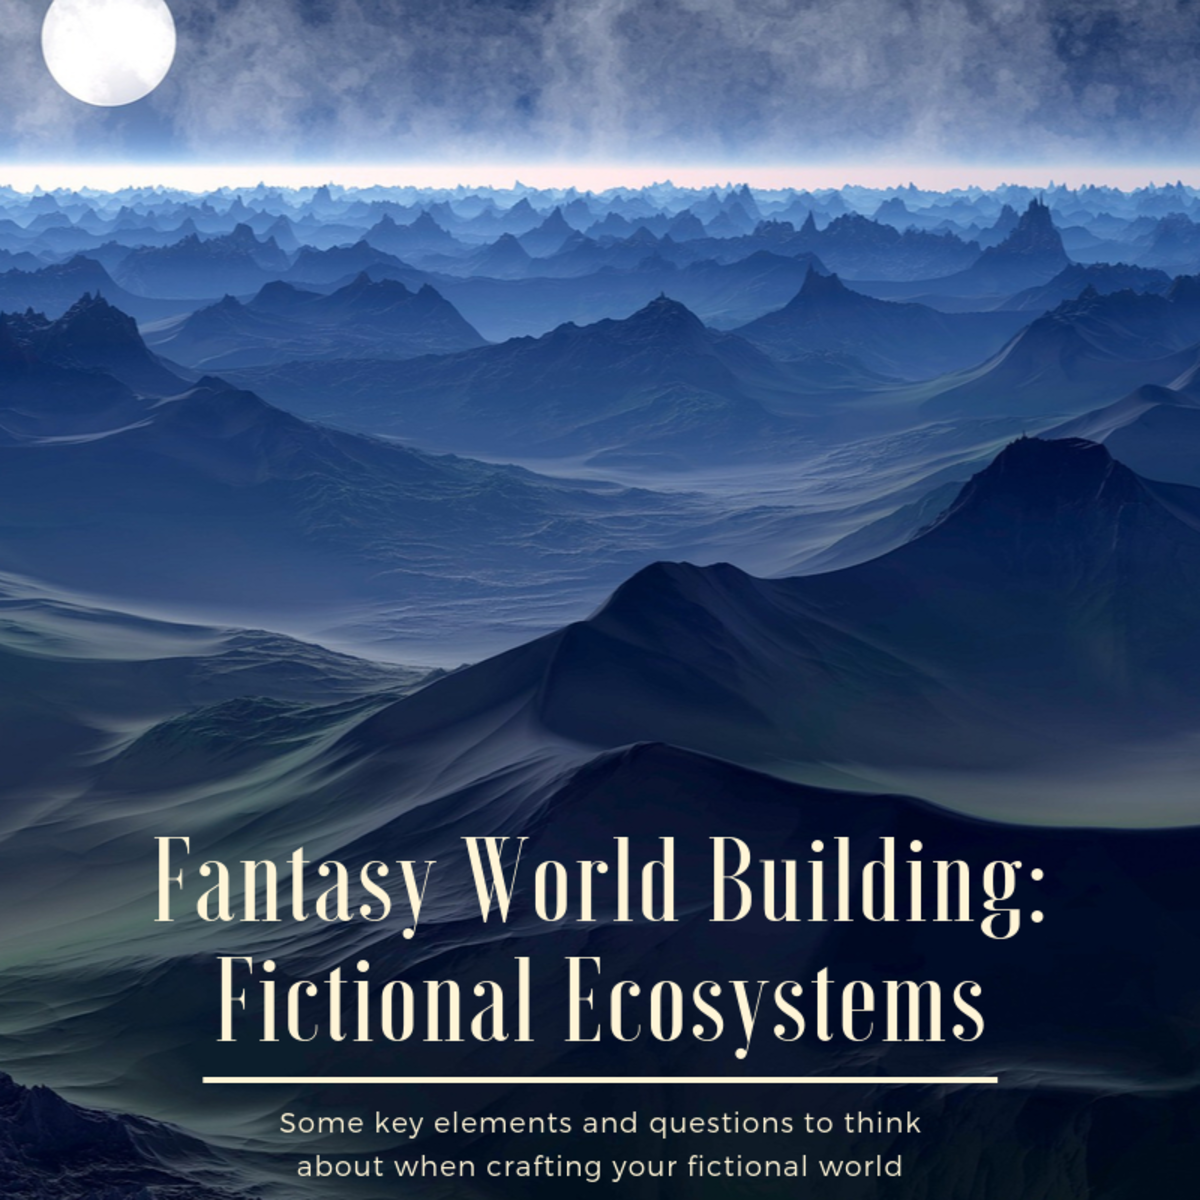 Fictional Ecosystems for Fantasy World Building